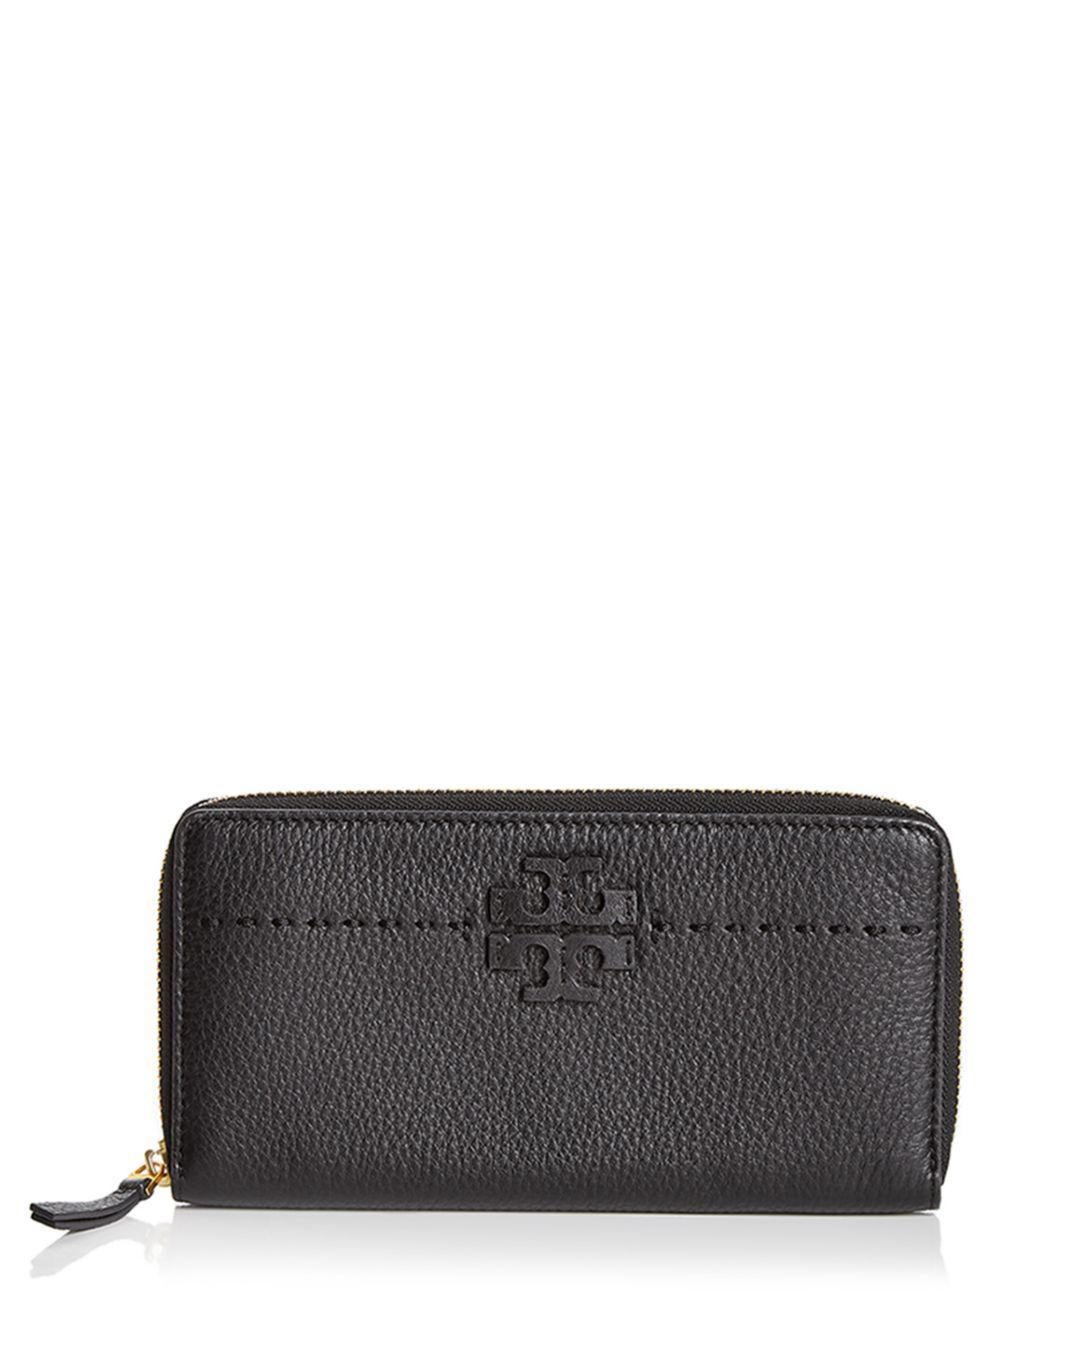 34a65fe371e2 Lyst - Tory Burch Mcgraw Zip Leather Continental Wallet